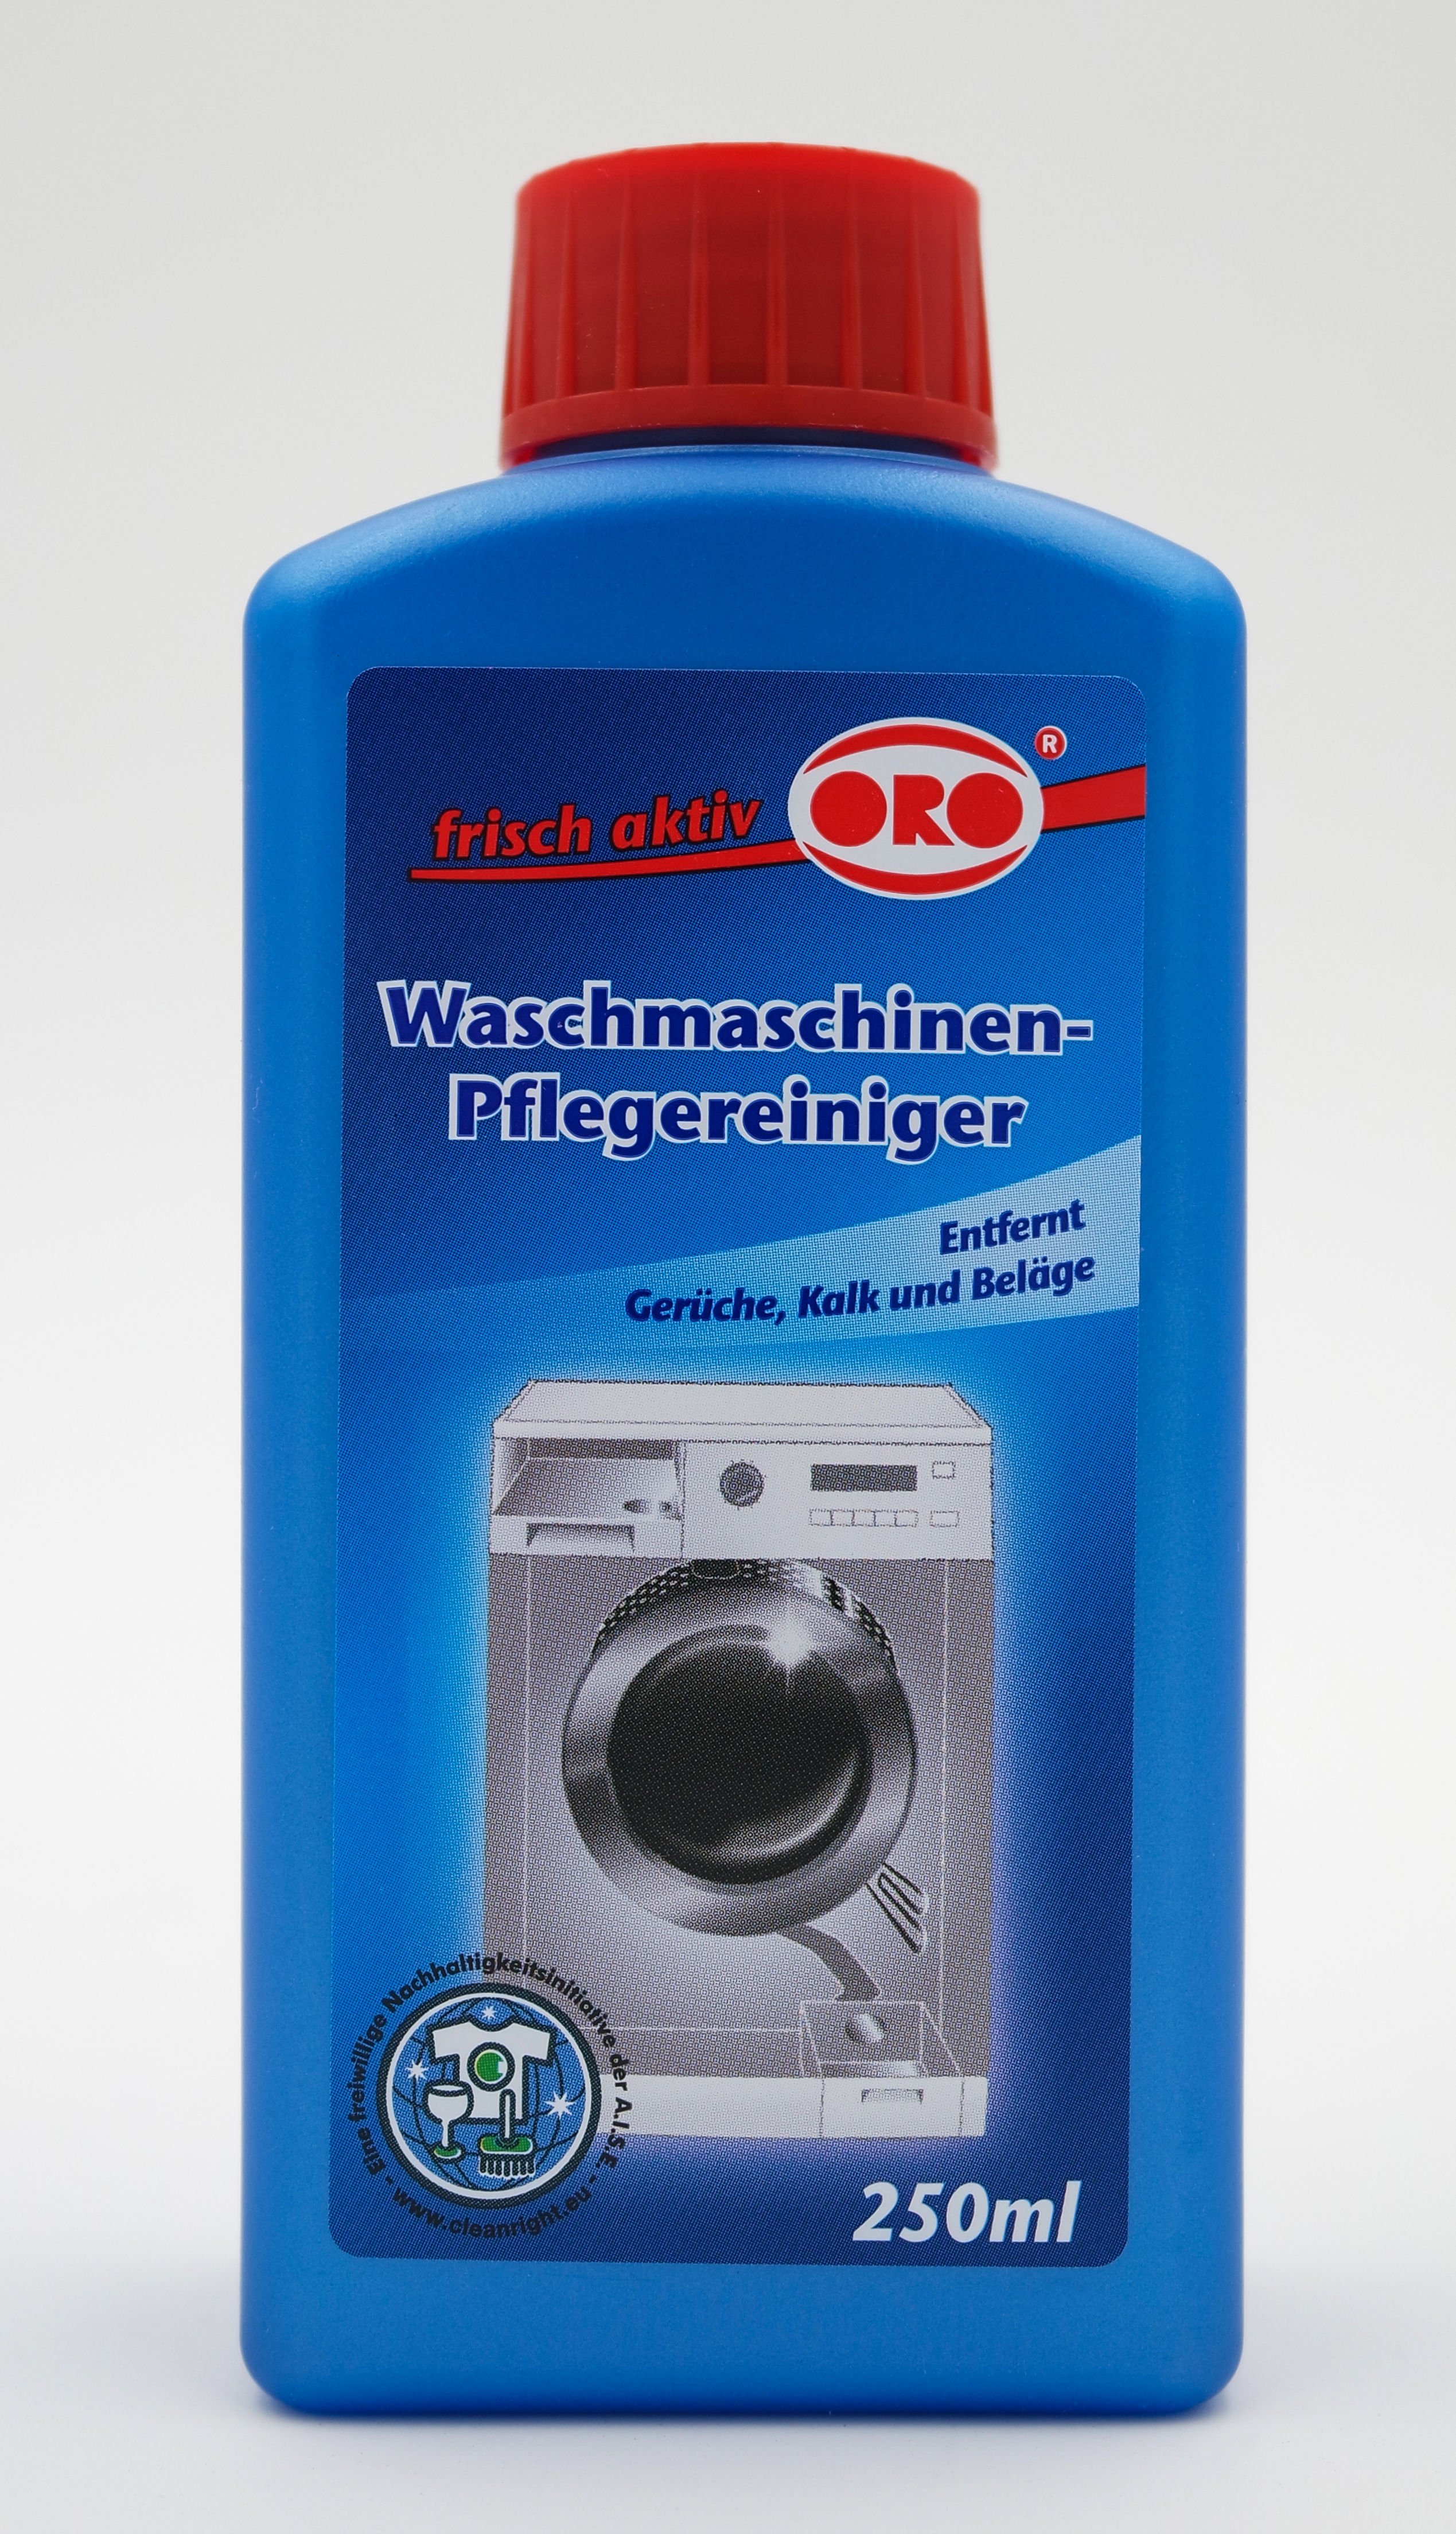 washing machine conditioning cleaner